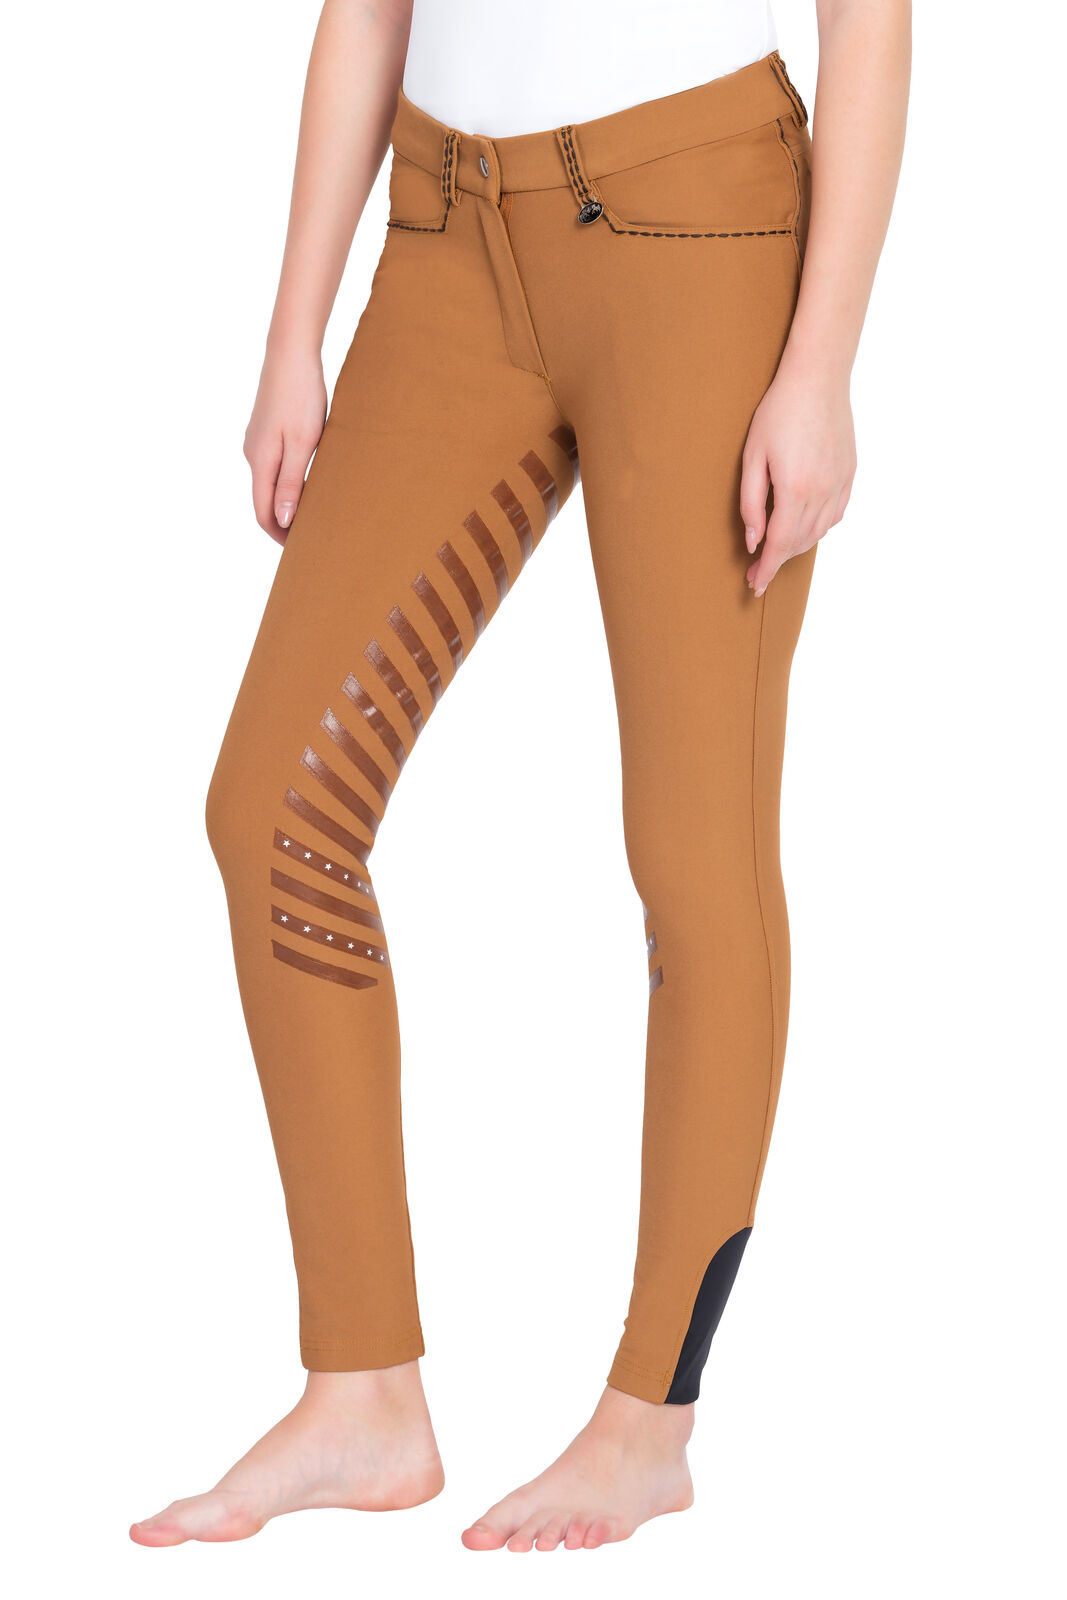 Equine Couture  Nora Extended Knee Patch Ladies Breeches                      ...  the newest